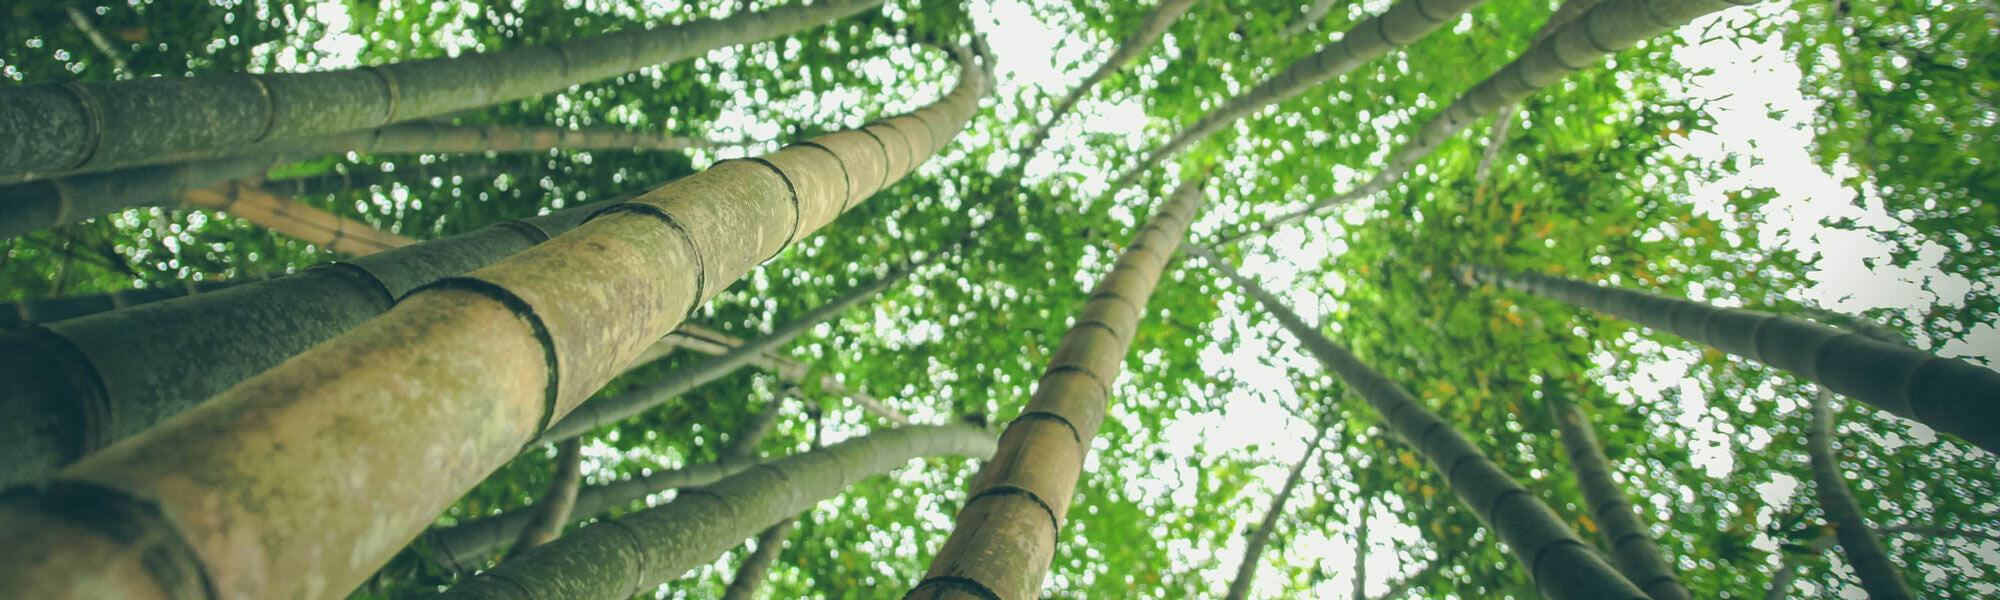 10 Powerful Benefits of Bamboo Clothing for You and the Environment